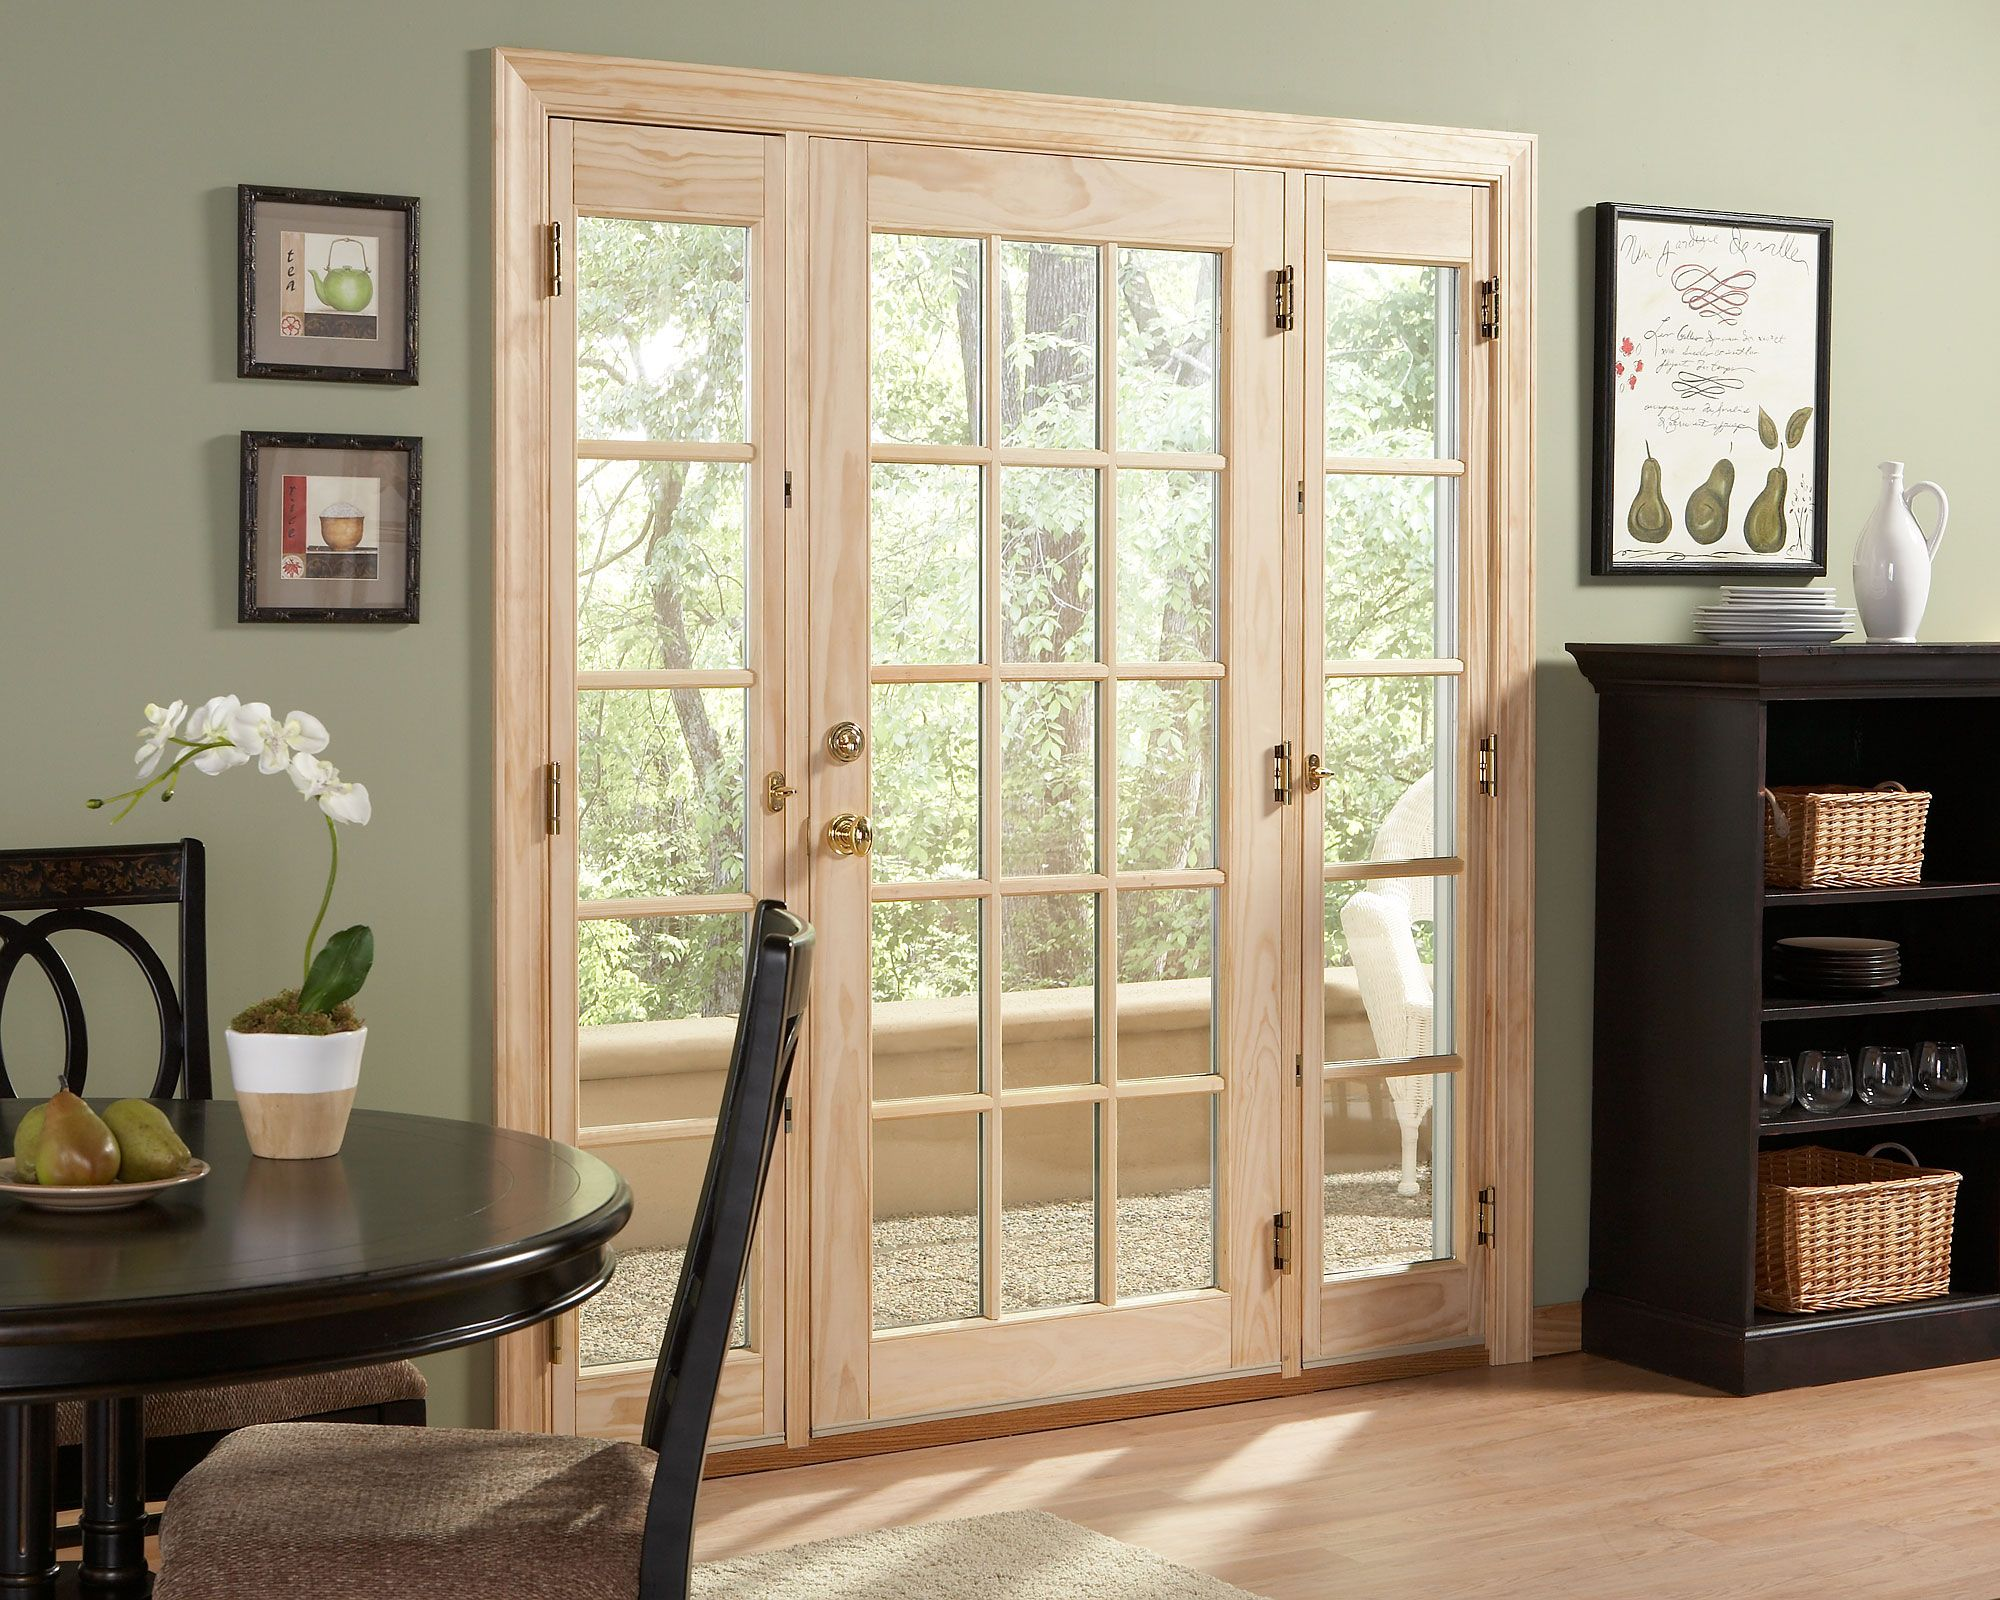 Ashworth(R) Patio Door with Venting Sidelites by Woodgrain Millwork & Ashworth(R) Patio Door with Venting Sidelites by Woodgrain ... Pezcame.Com